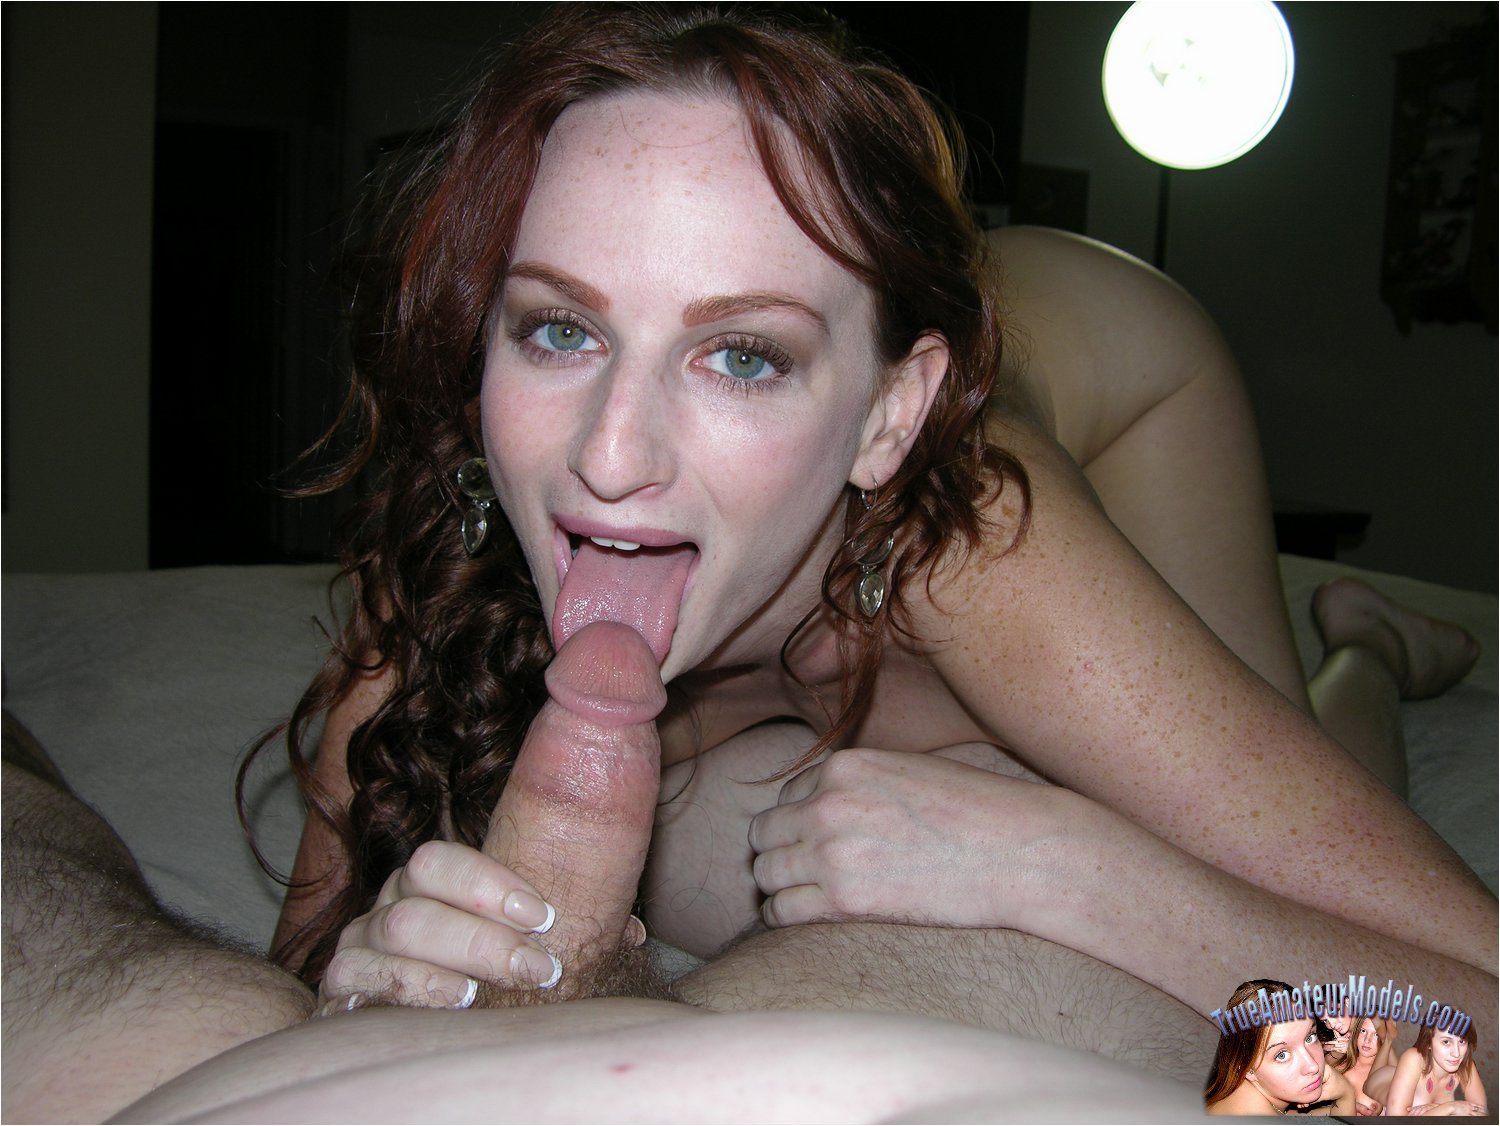 Amateur redhead gives bday sex in exchange for a pack of cigarettes